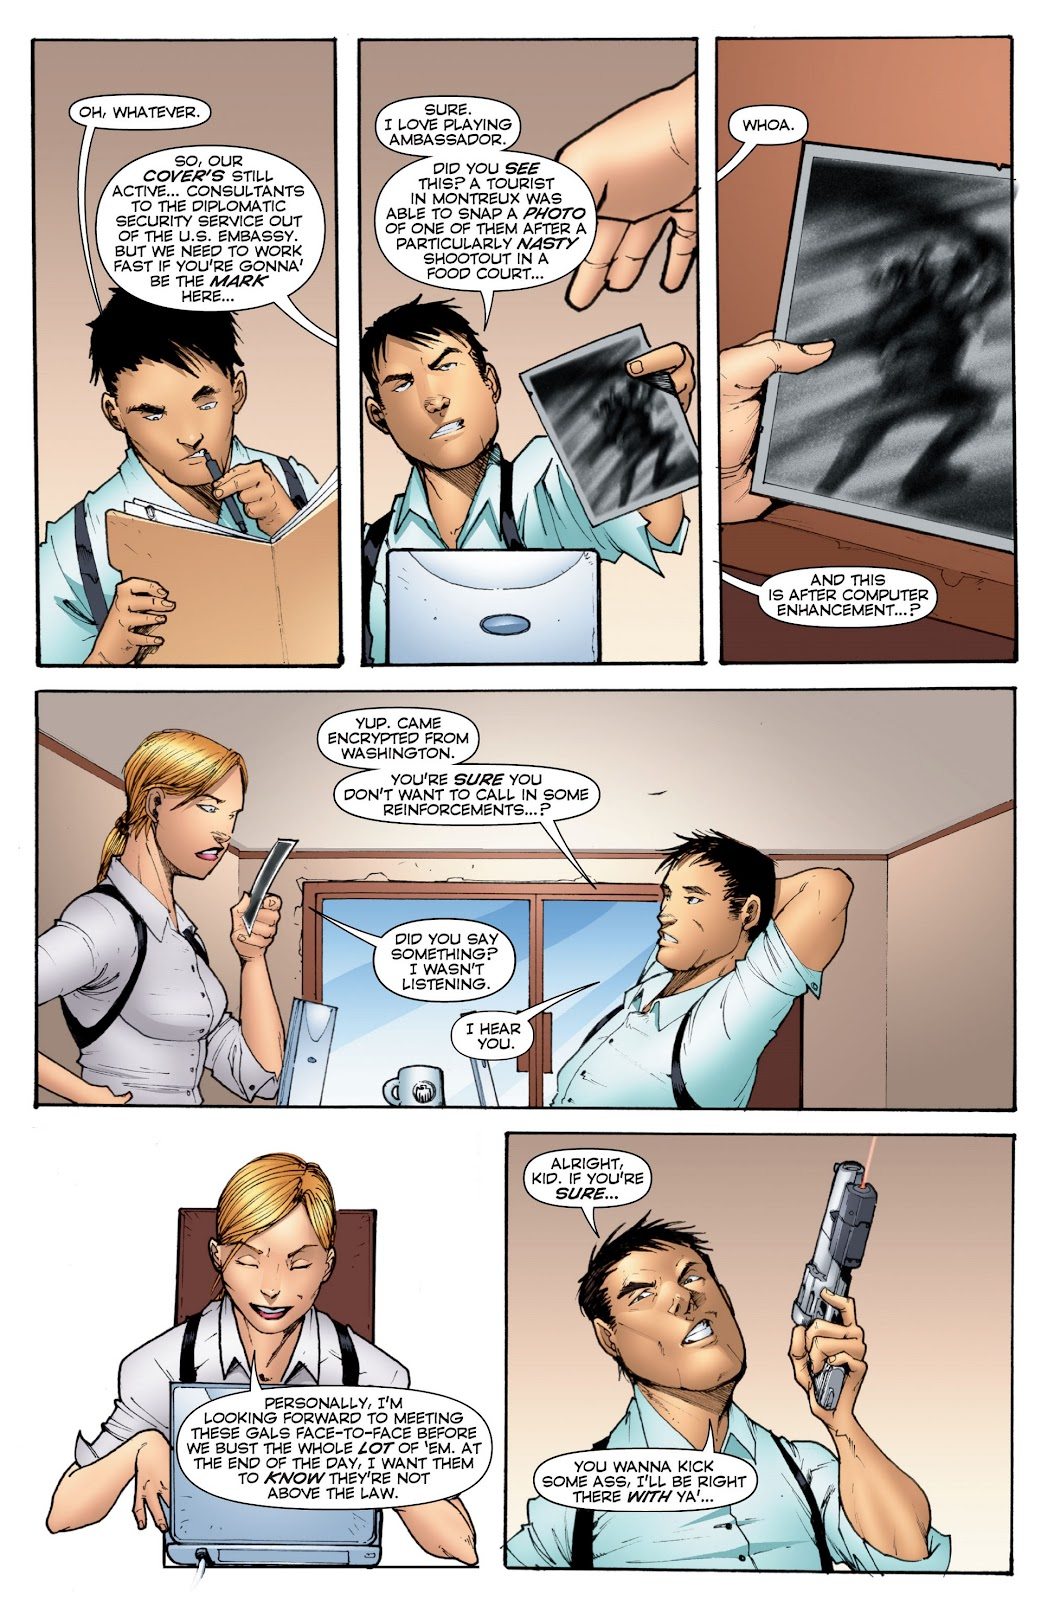 Wildcats Version 3.0 Issue #17 #17 - English 22